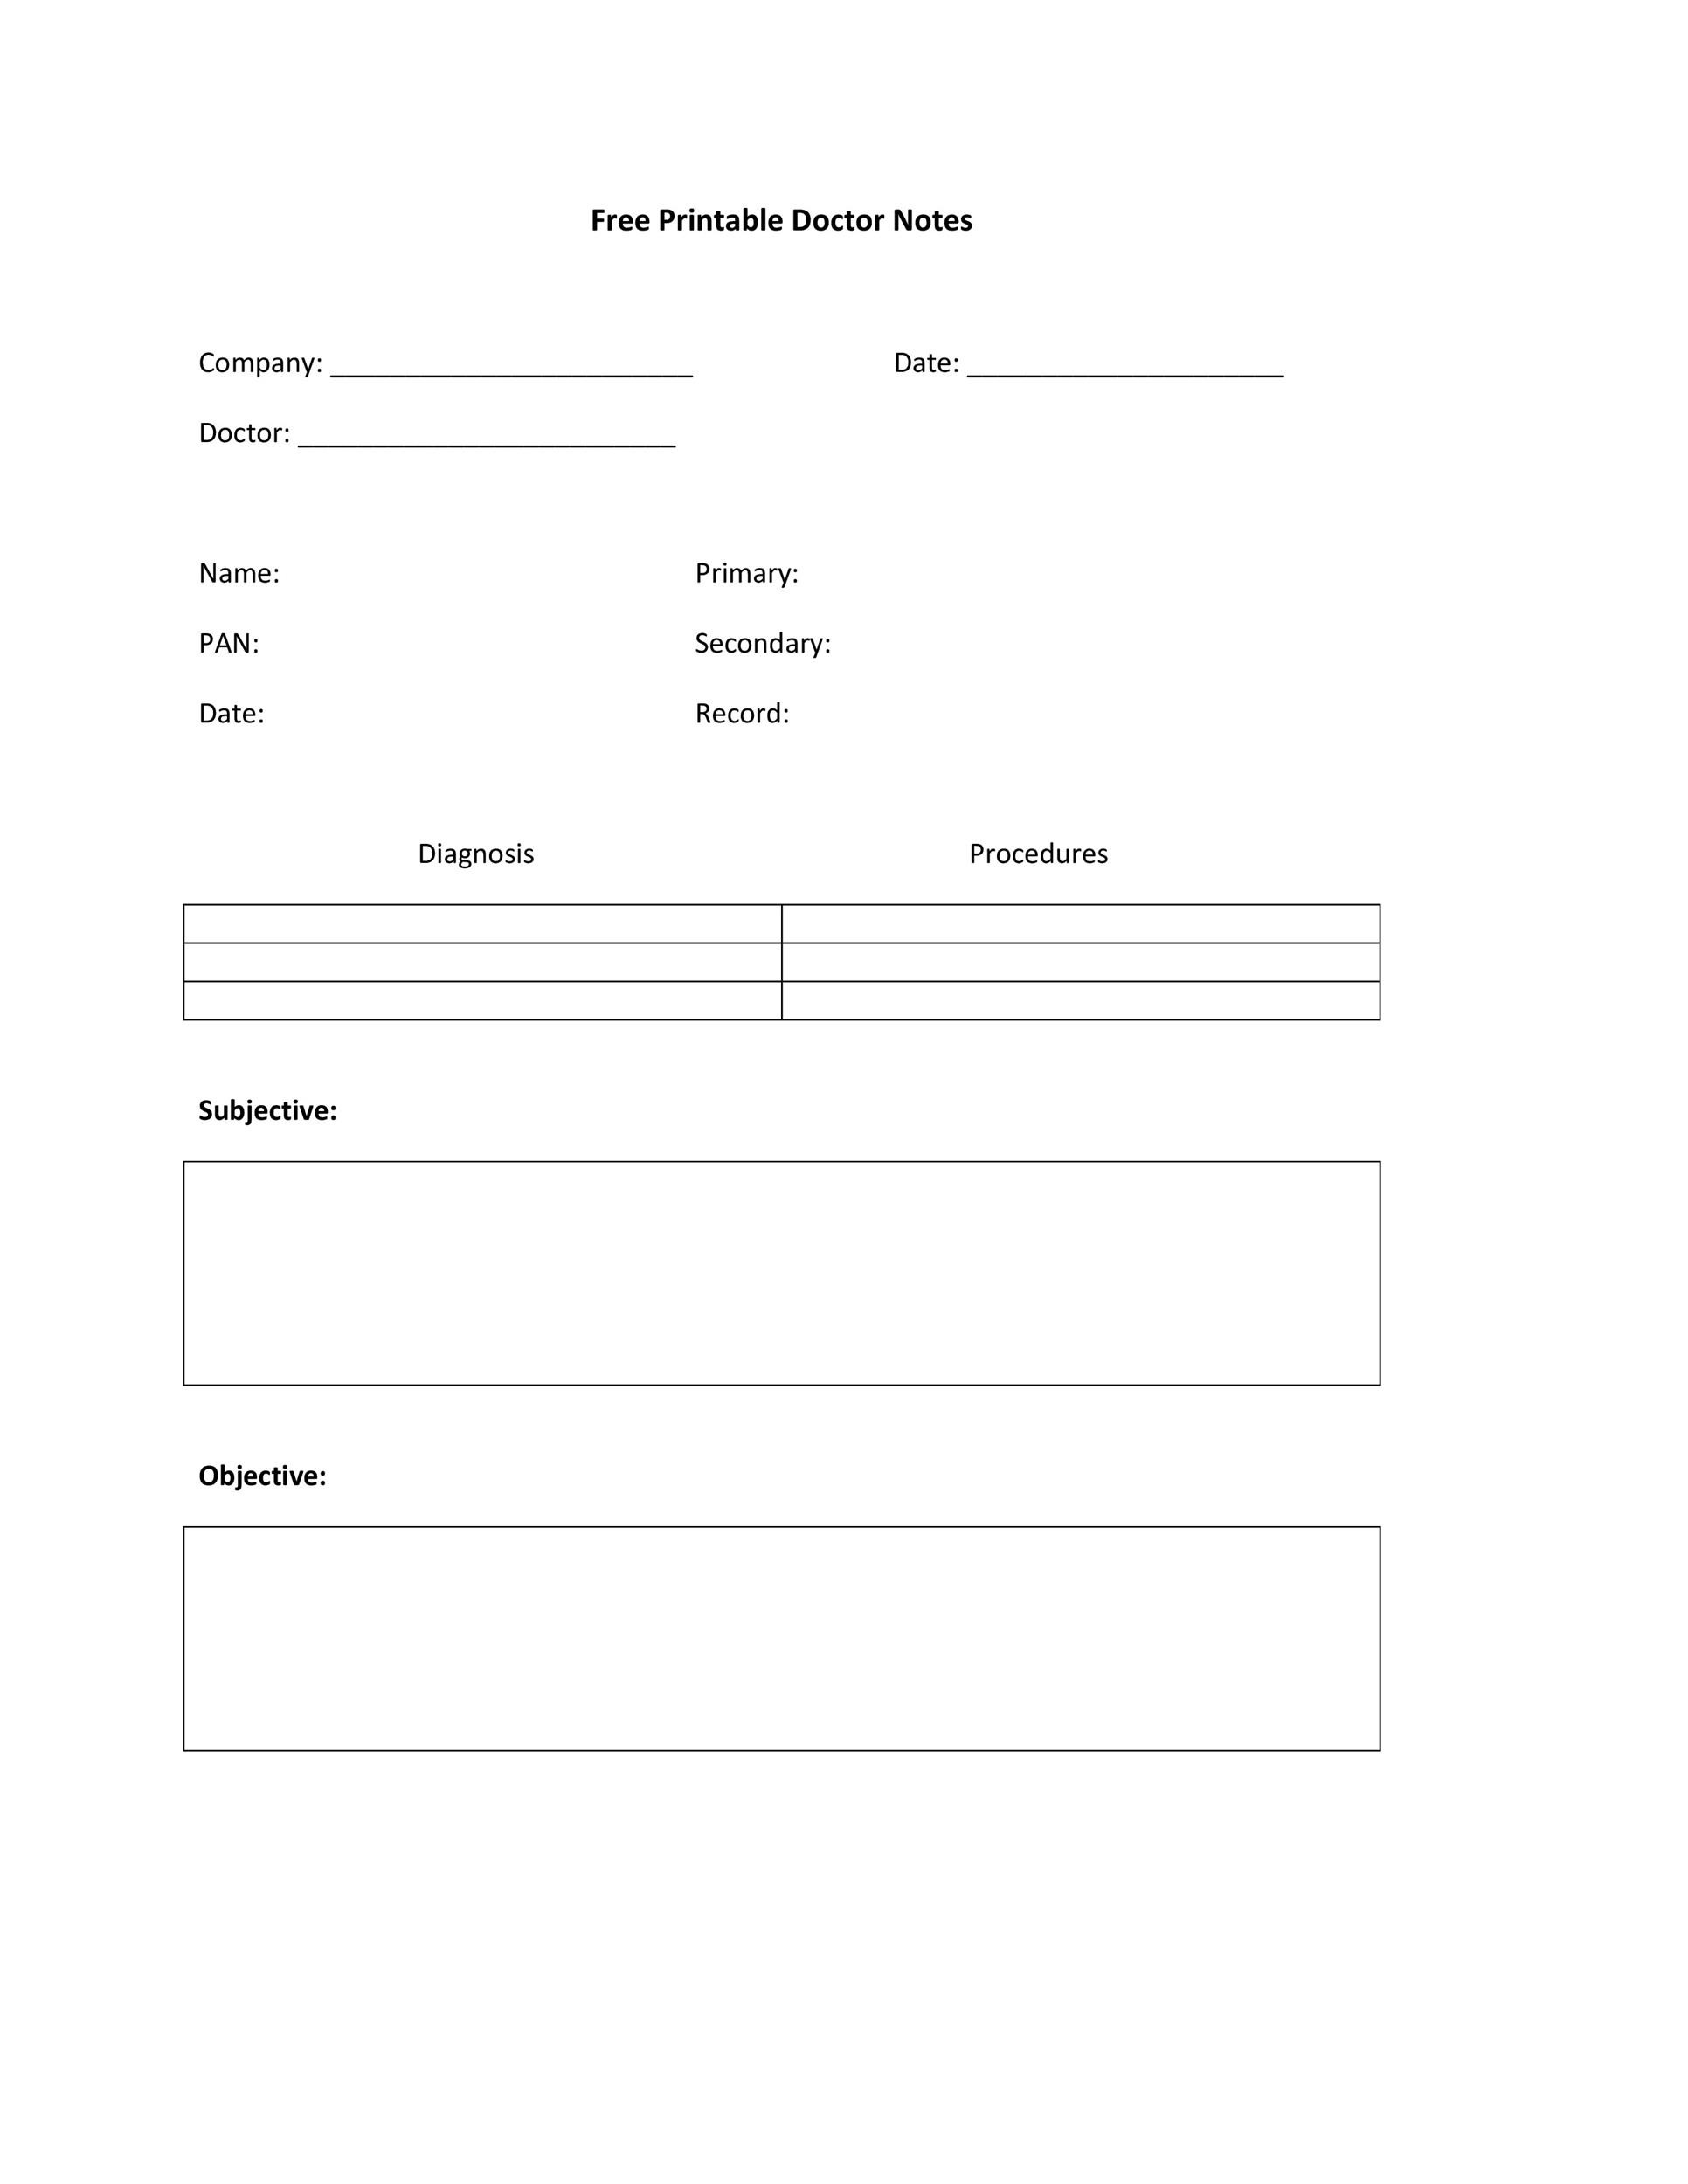 Printable Doctor Notes 07  Free Printable Doctor Forms